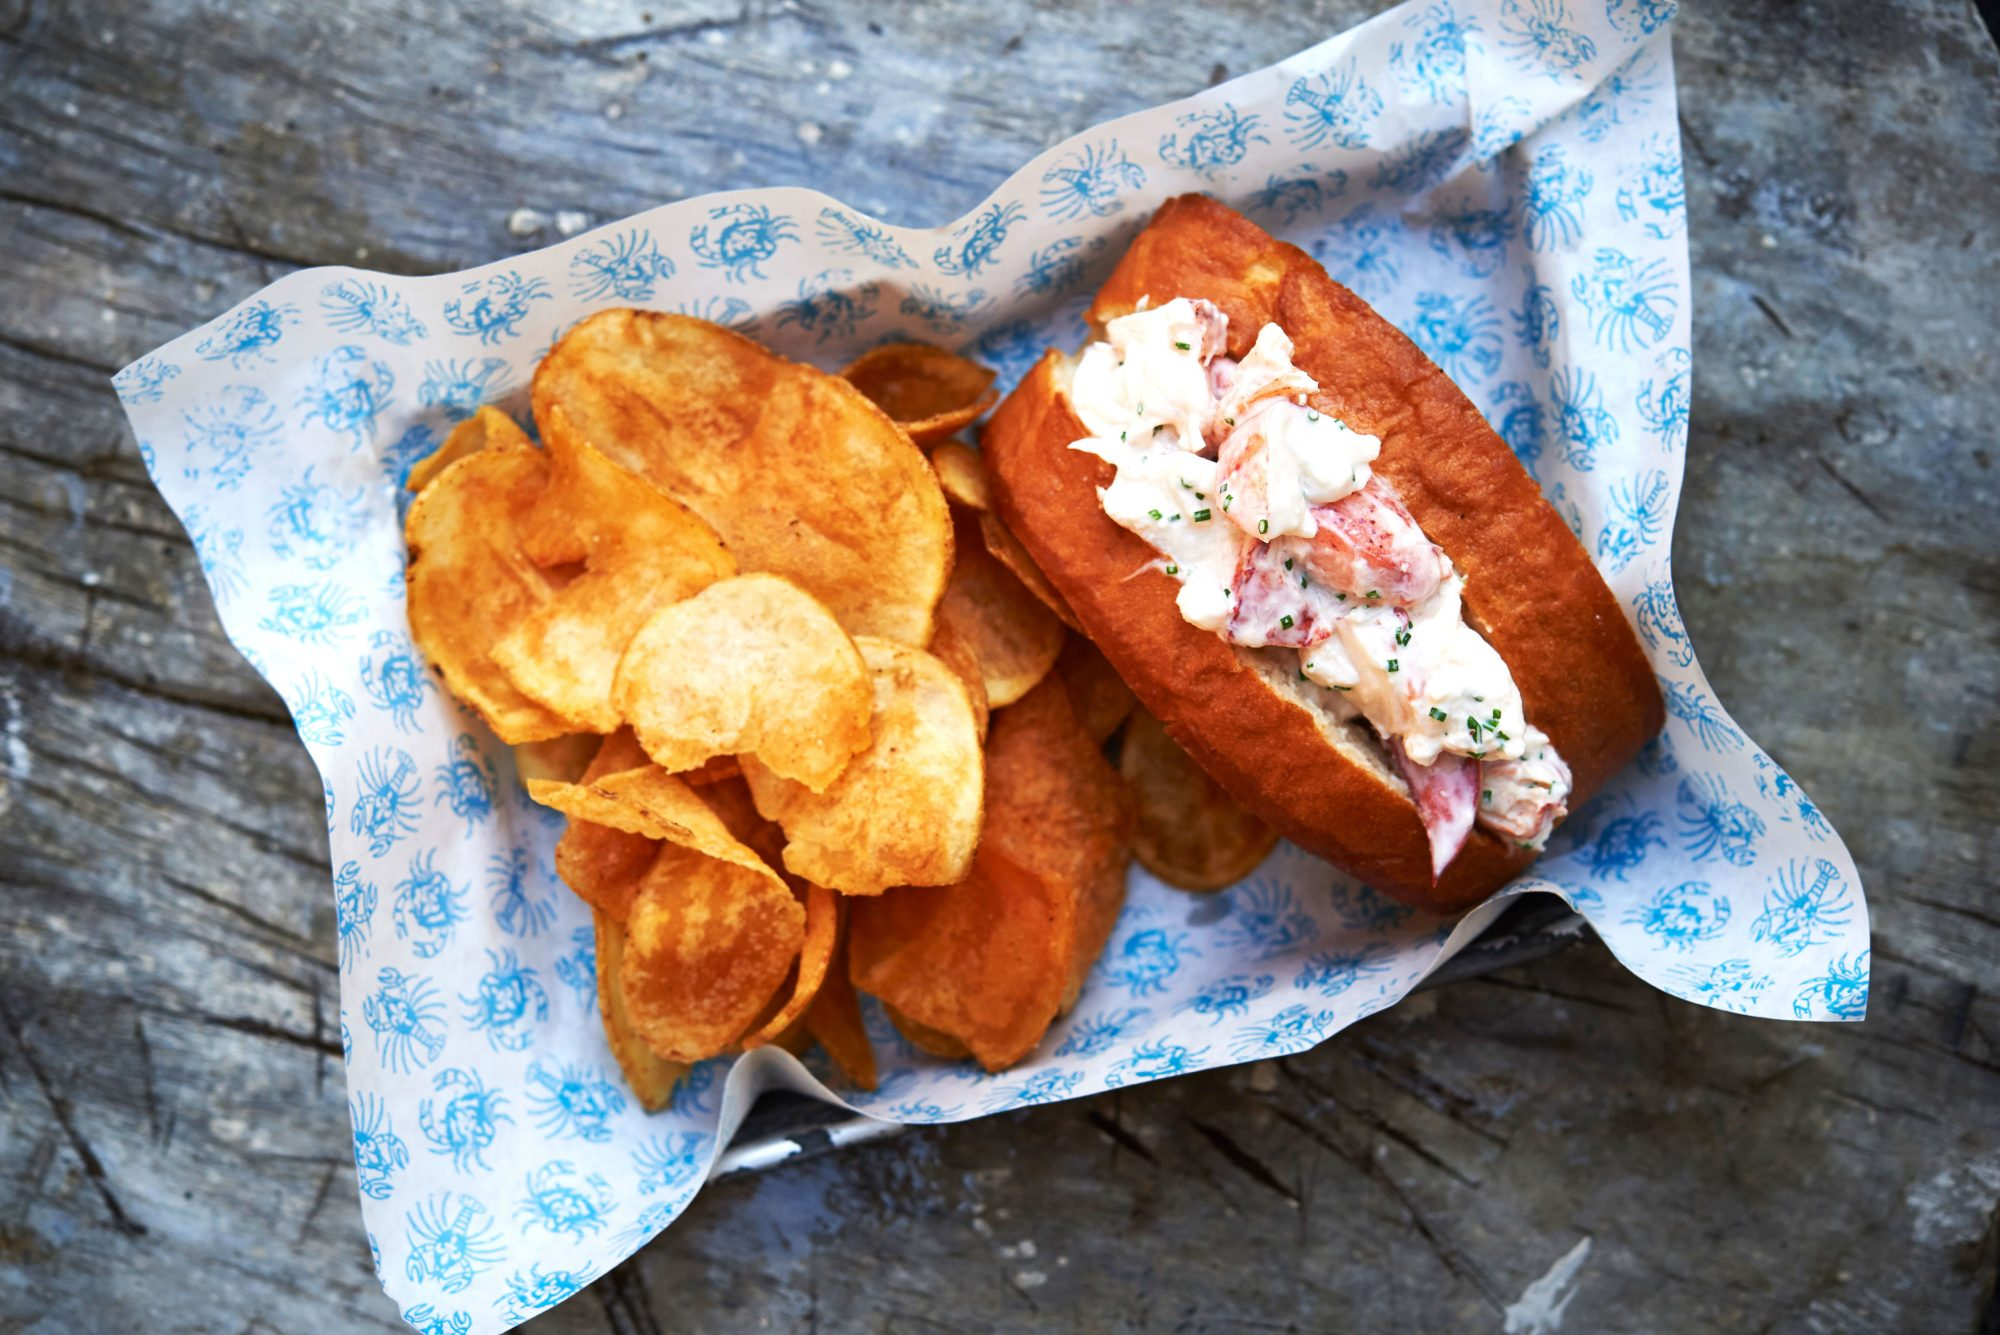 Peacemaker Lobster & Crab Co.